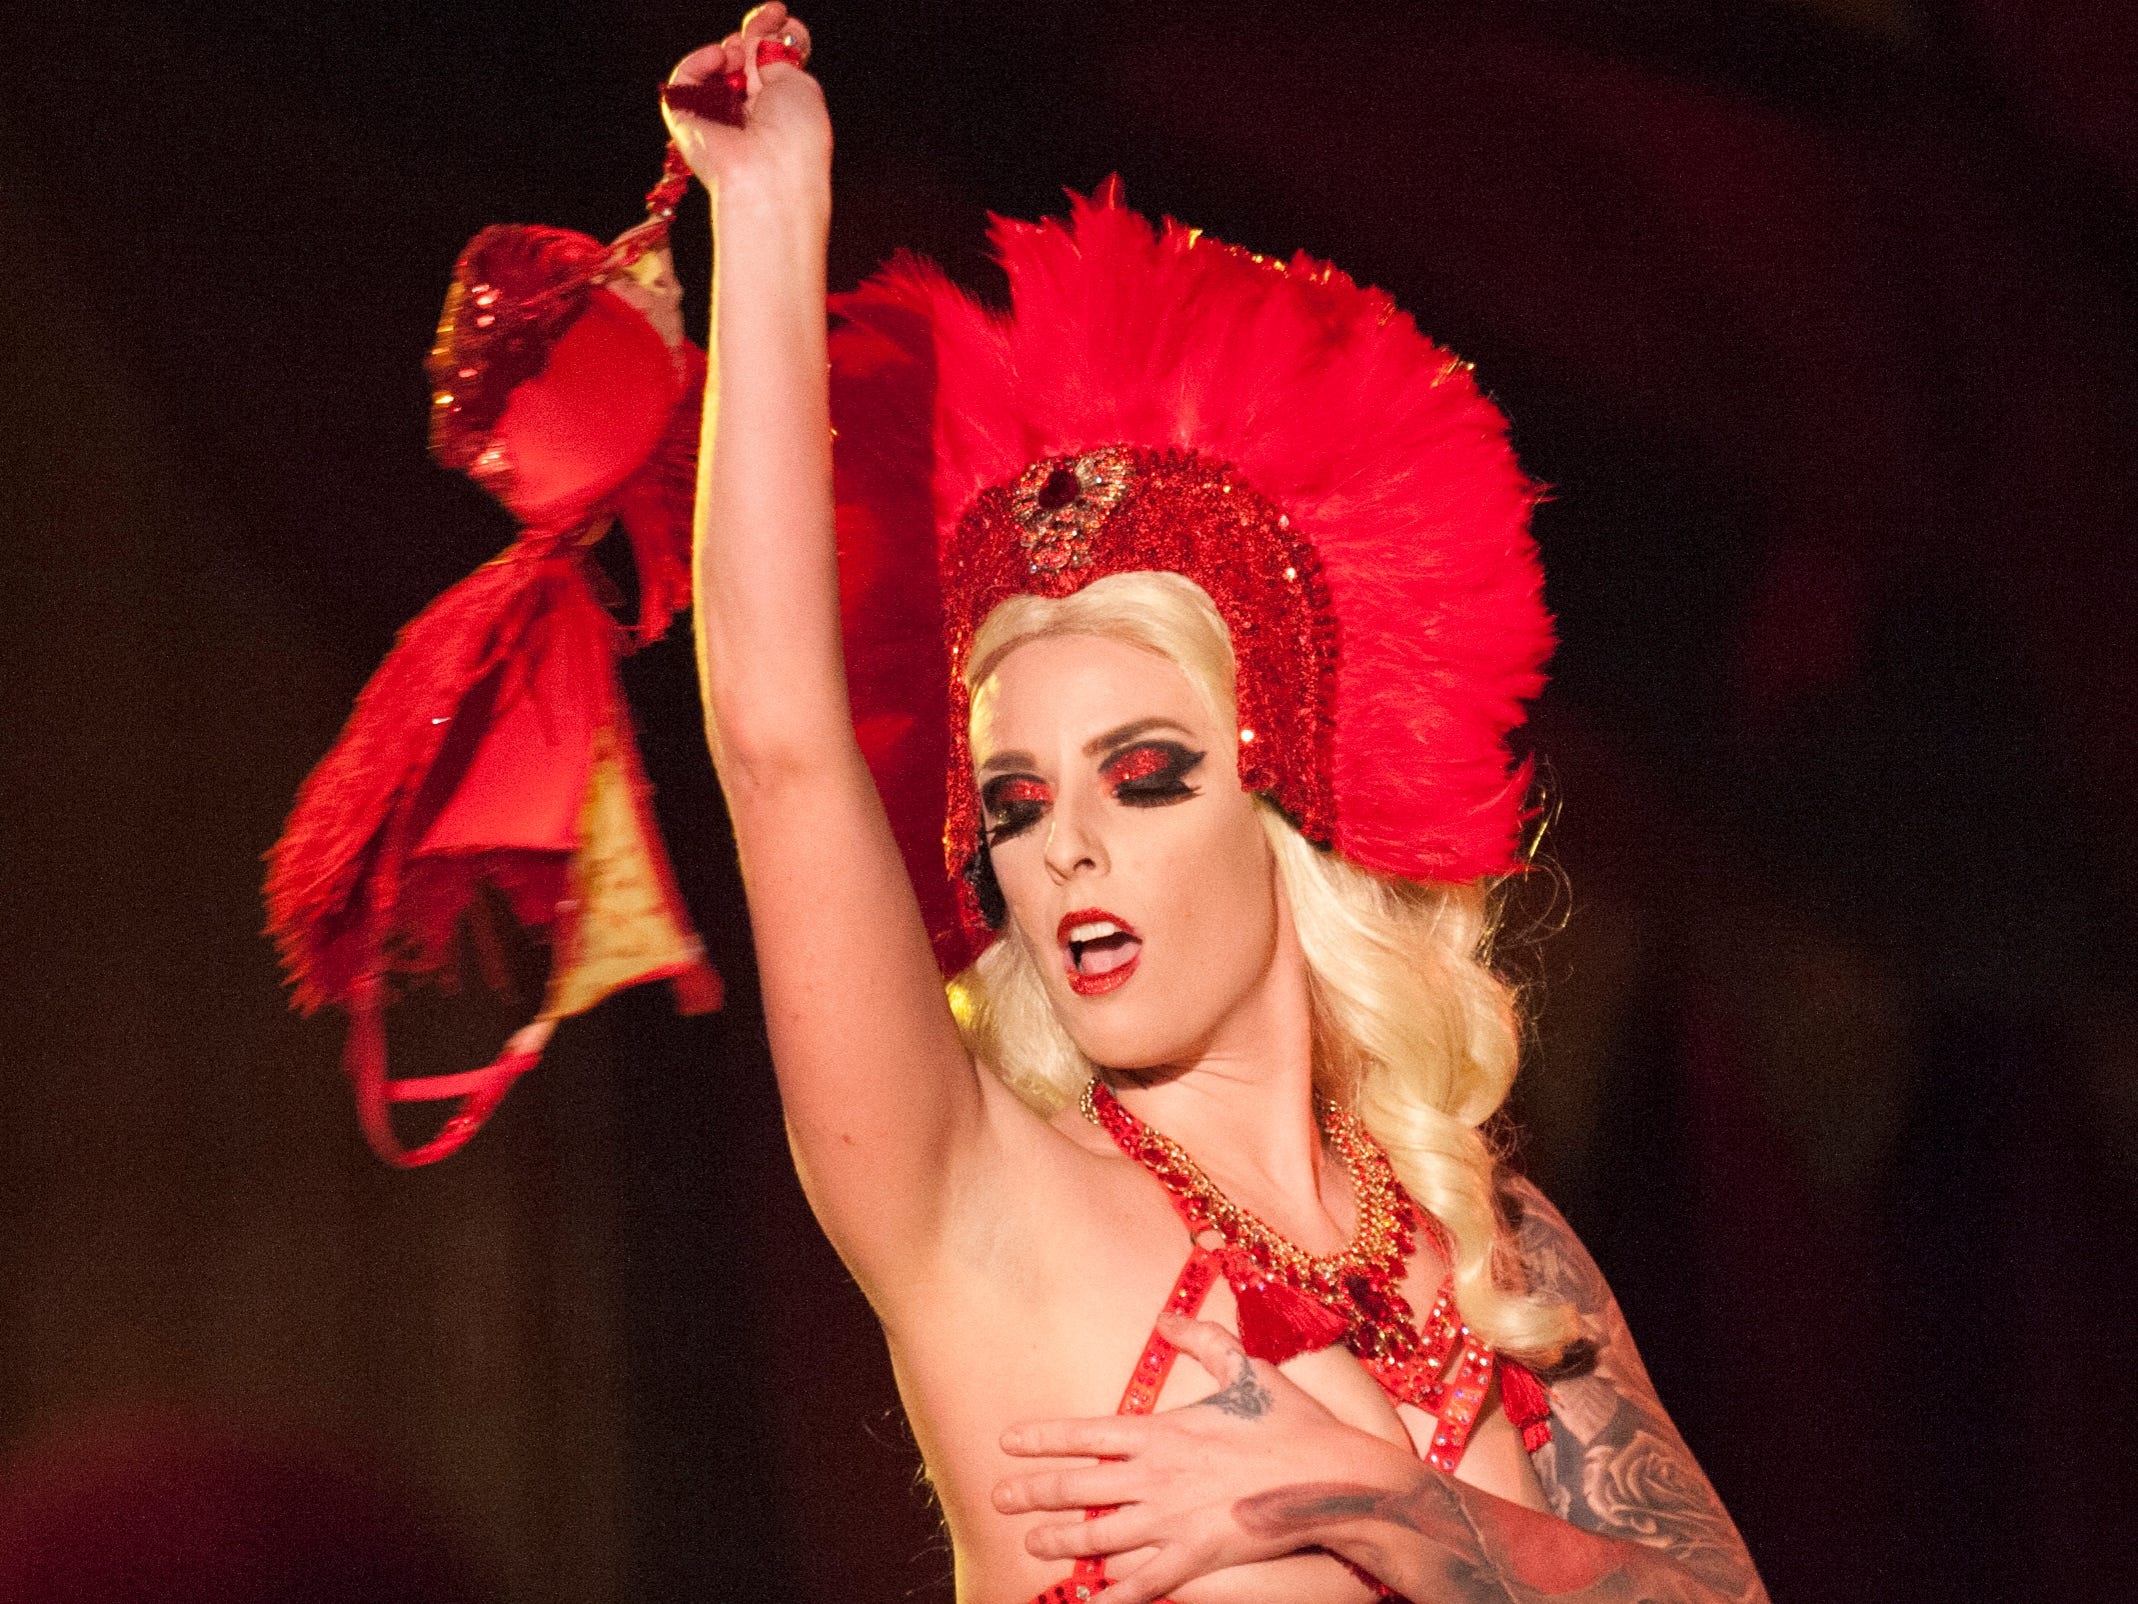 Burlesque performer Magenta DeMure teases the audience at the Dirty Devils Peepshow on the fifth floor.